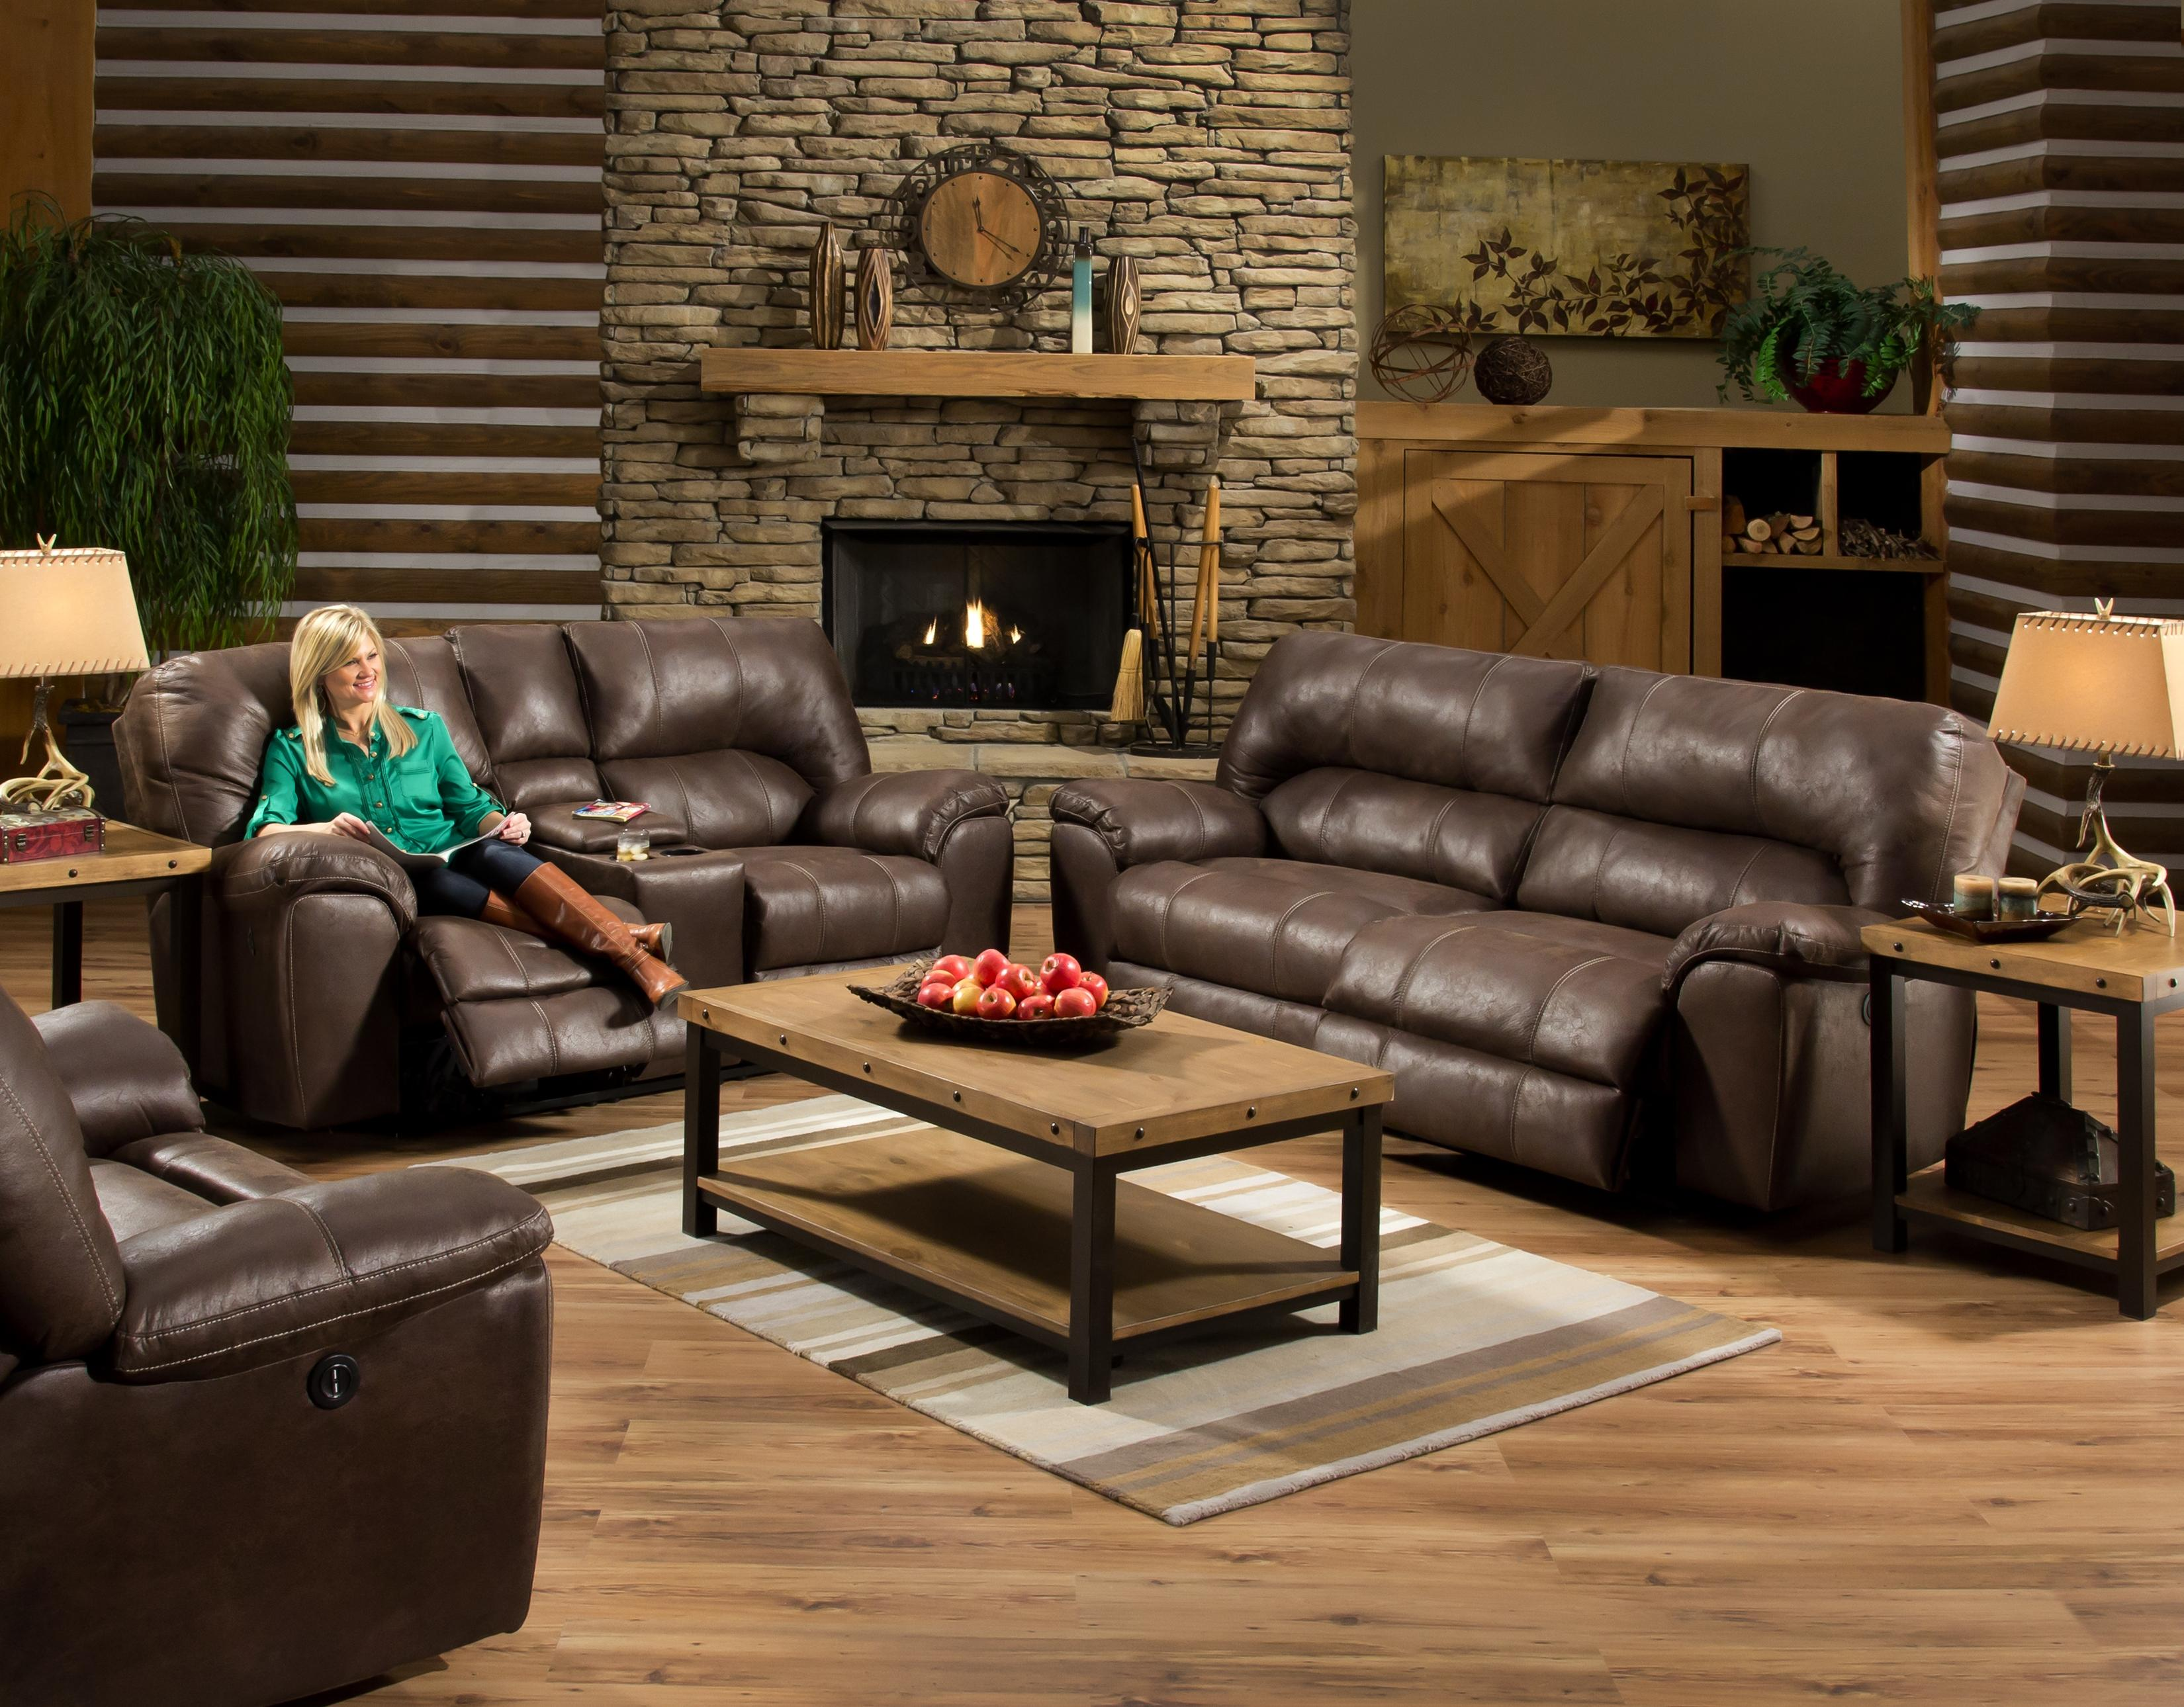 American Furniture AF740 Power Reclining Living Room Group - Item Number: AF740 Power Living Room Group 2